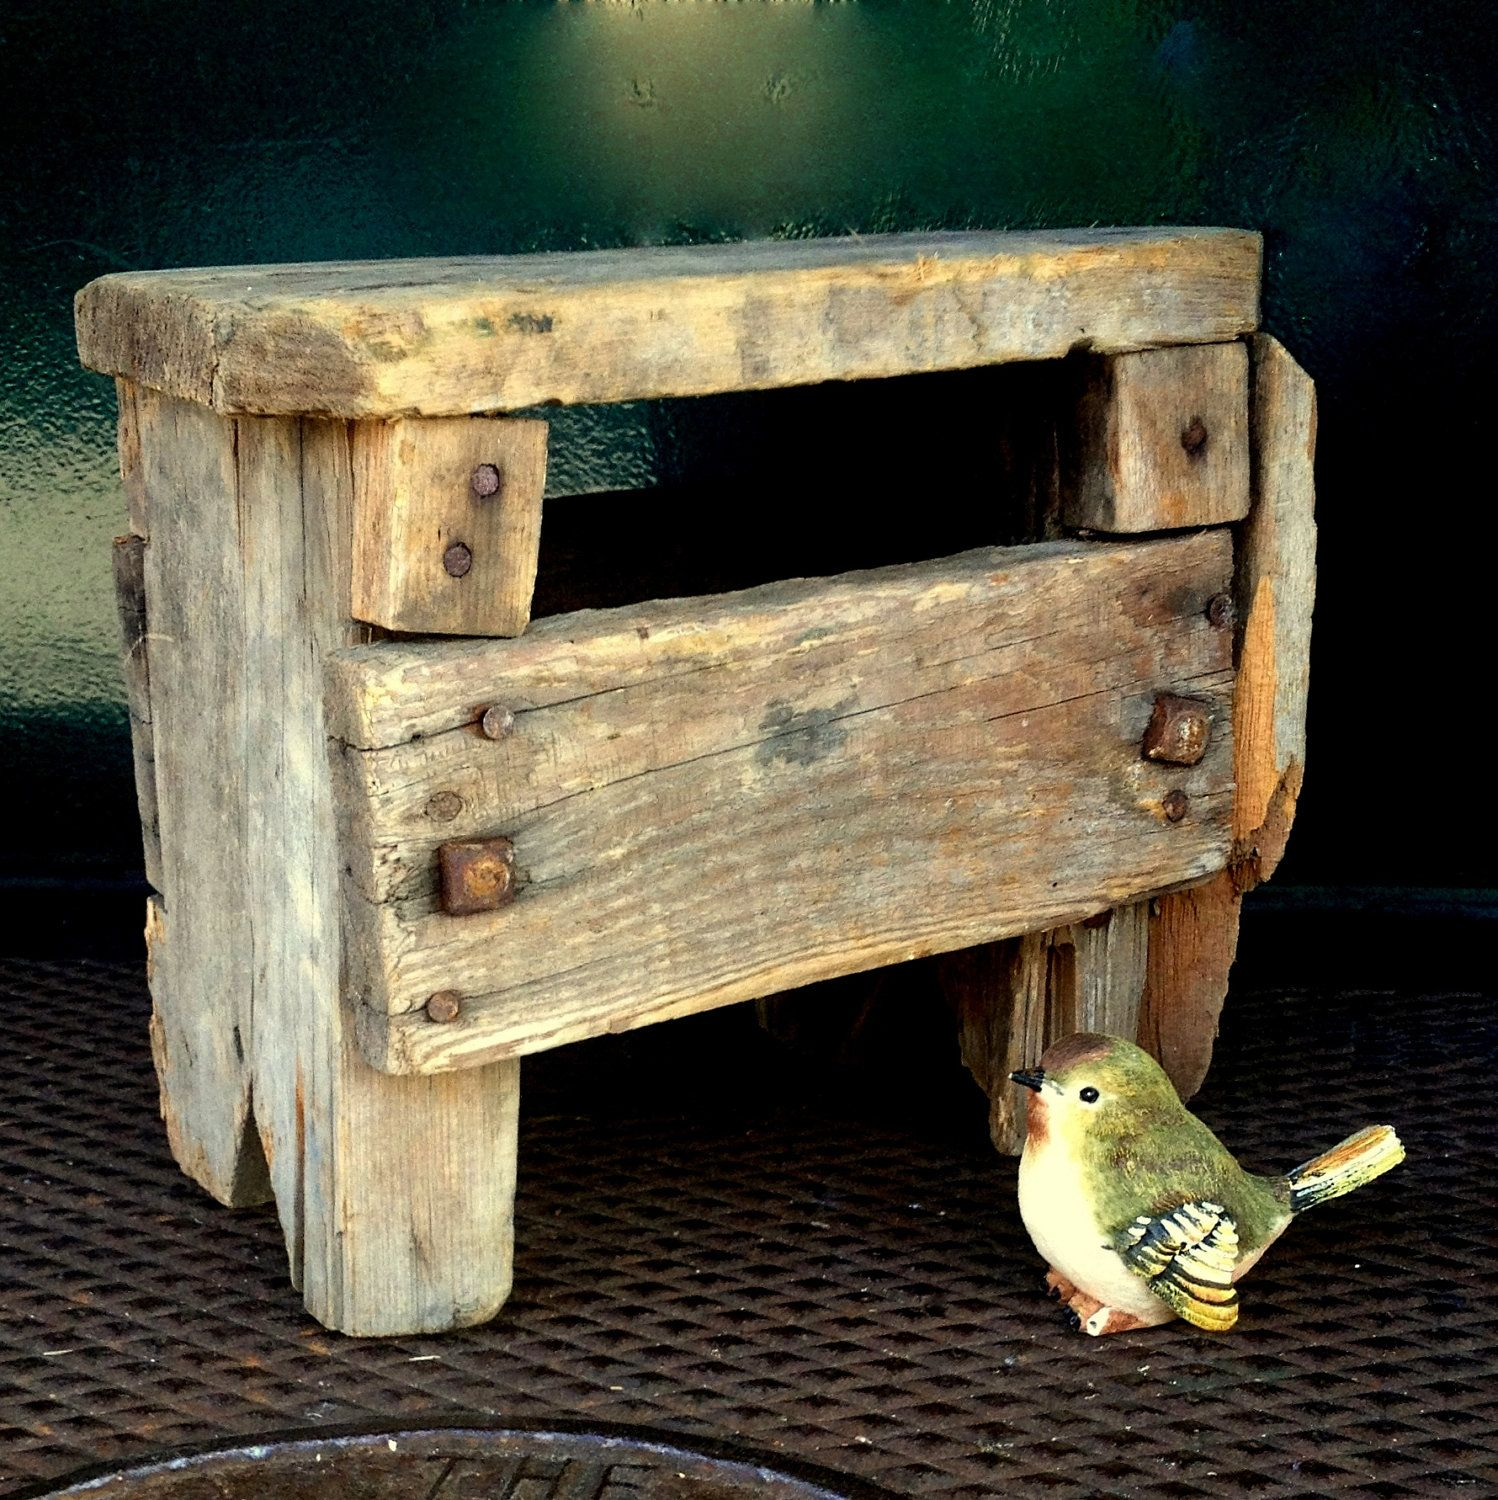 The Best Rustic Old Stool Ever Farm Stool Step Stool